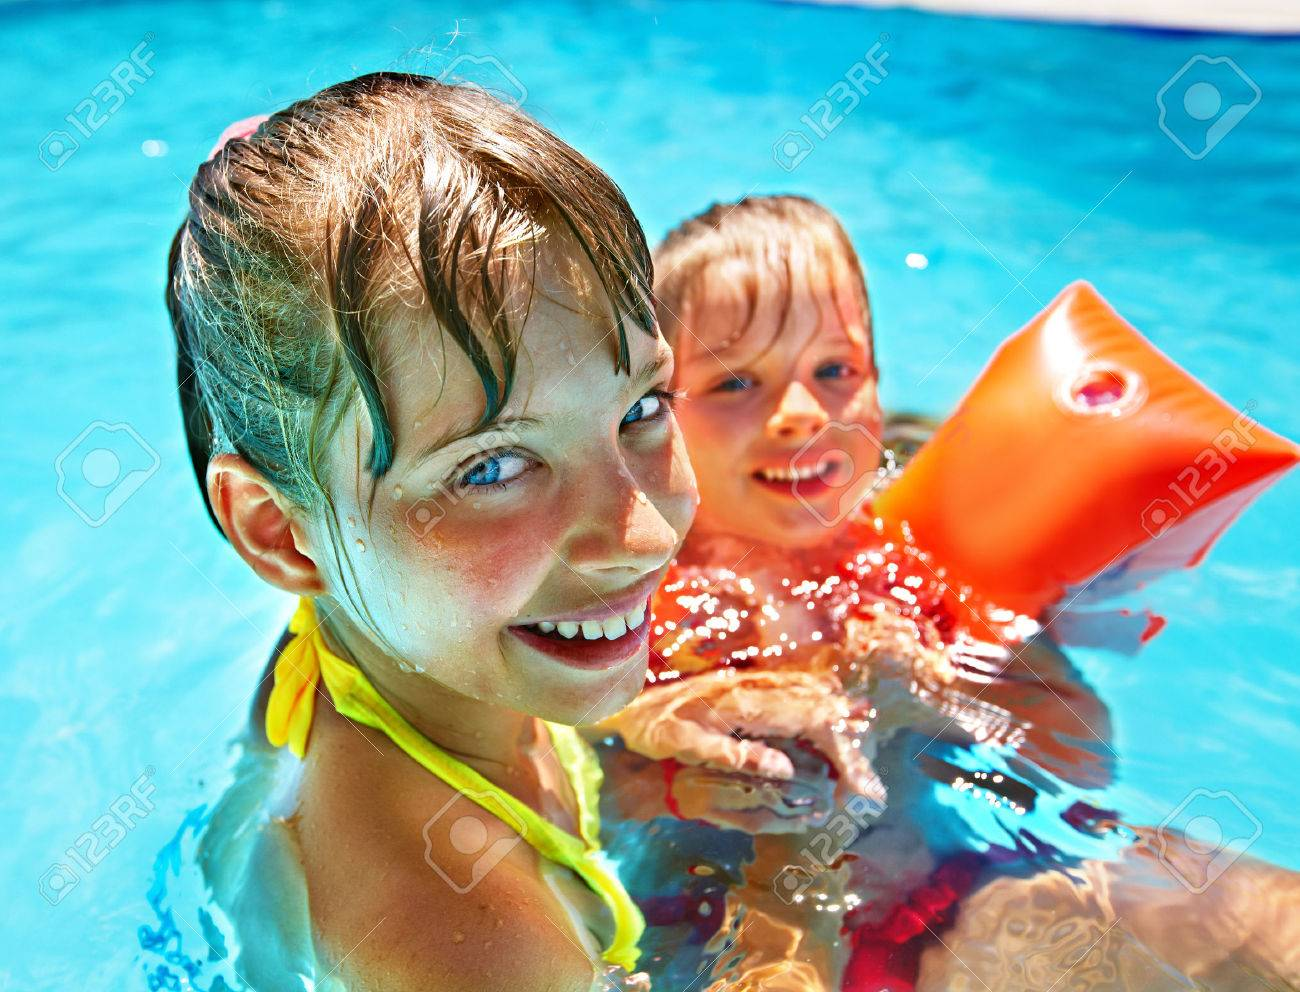 Children with armbands in swimming pool. - 28393739